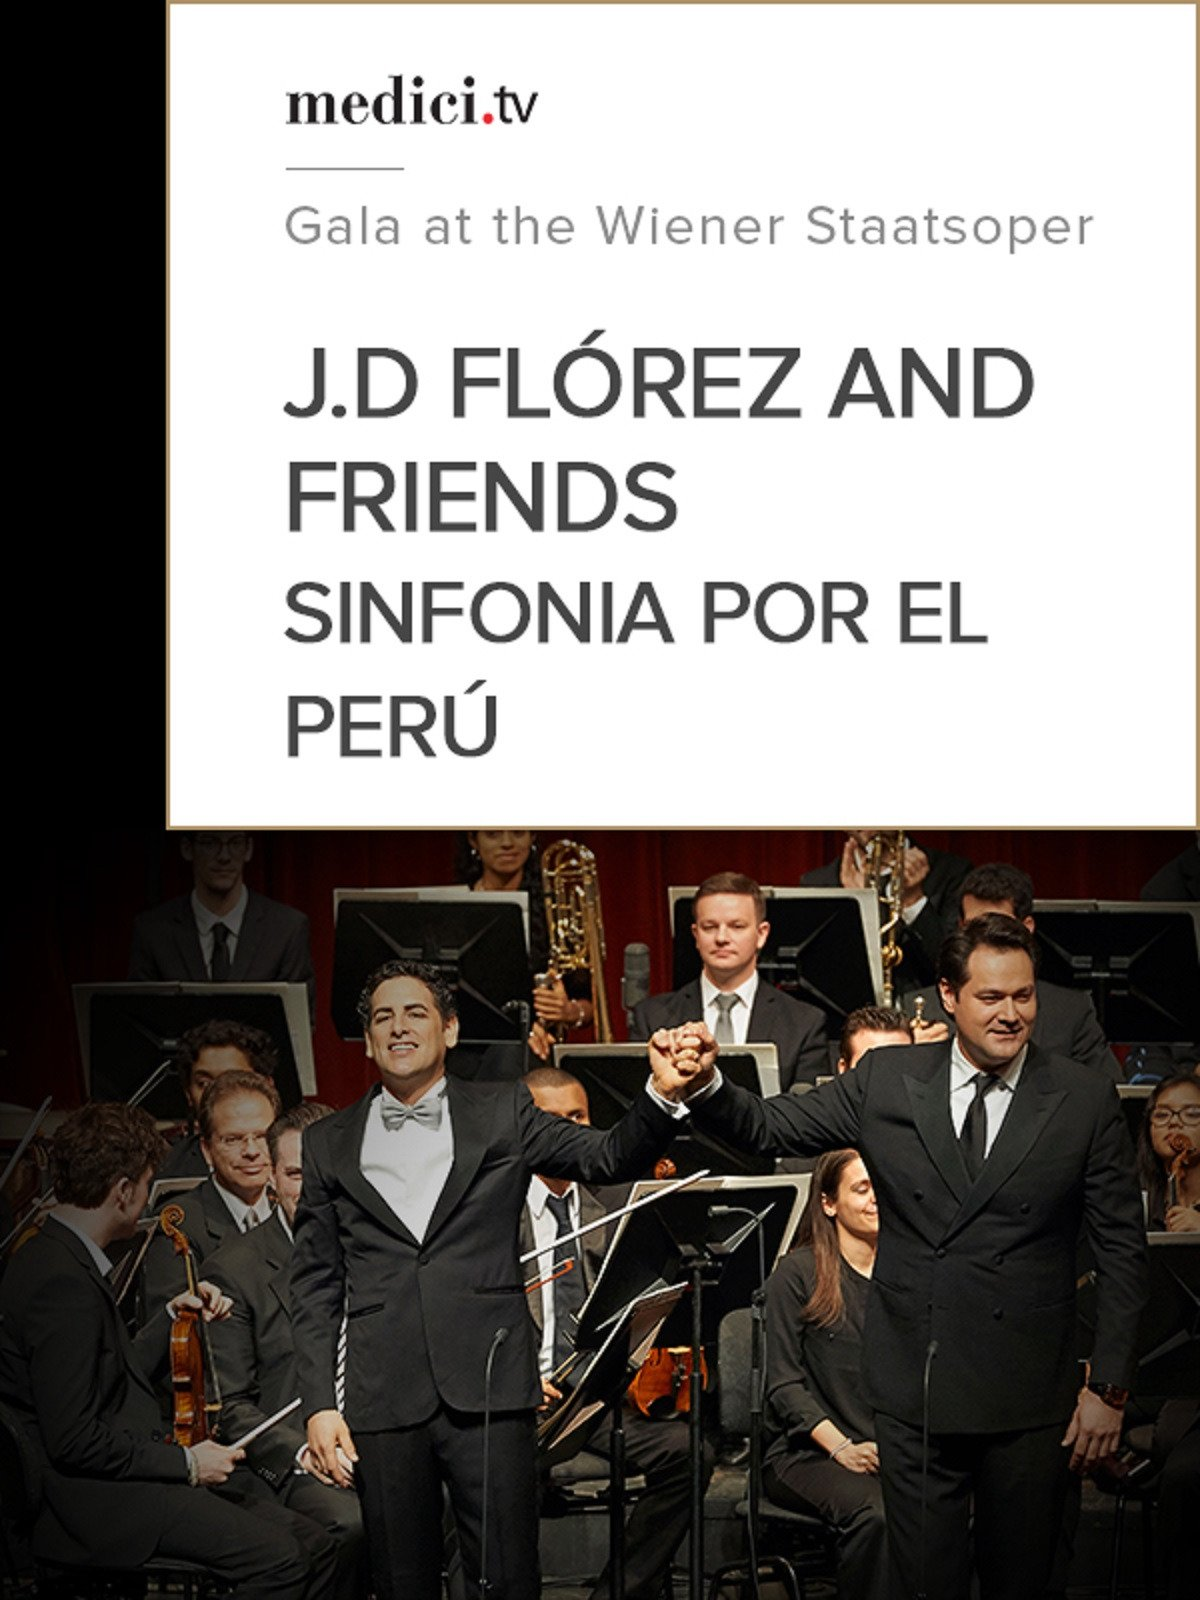 Juan Diego Flórez and Friends, Sinfonia por el Perú